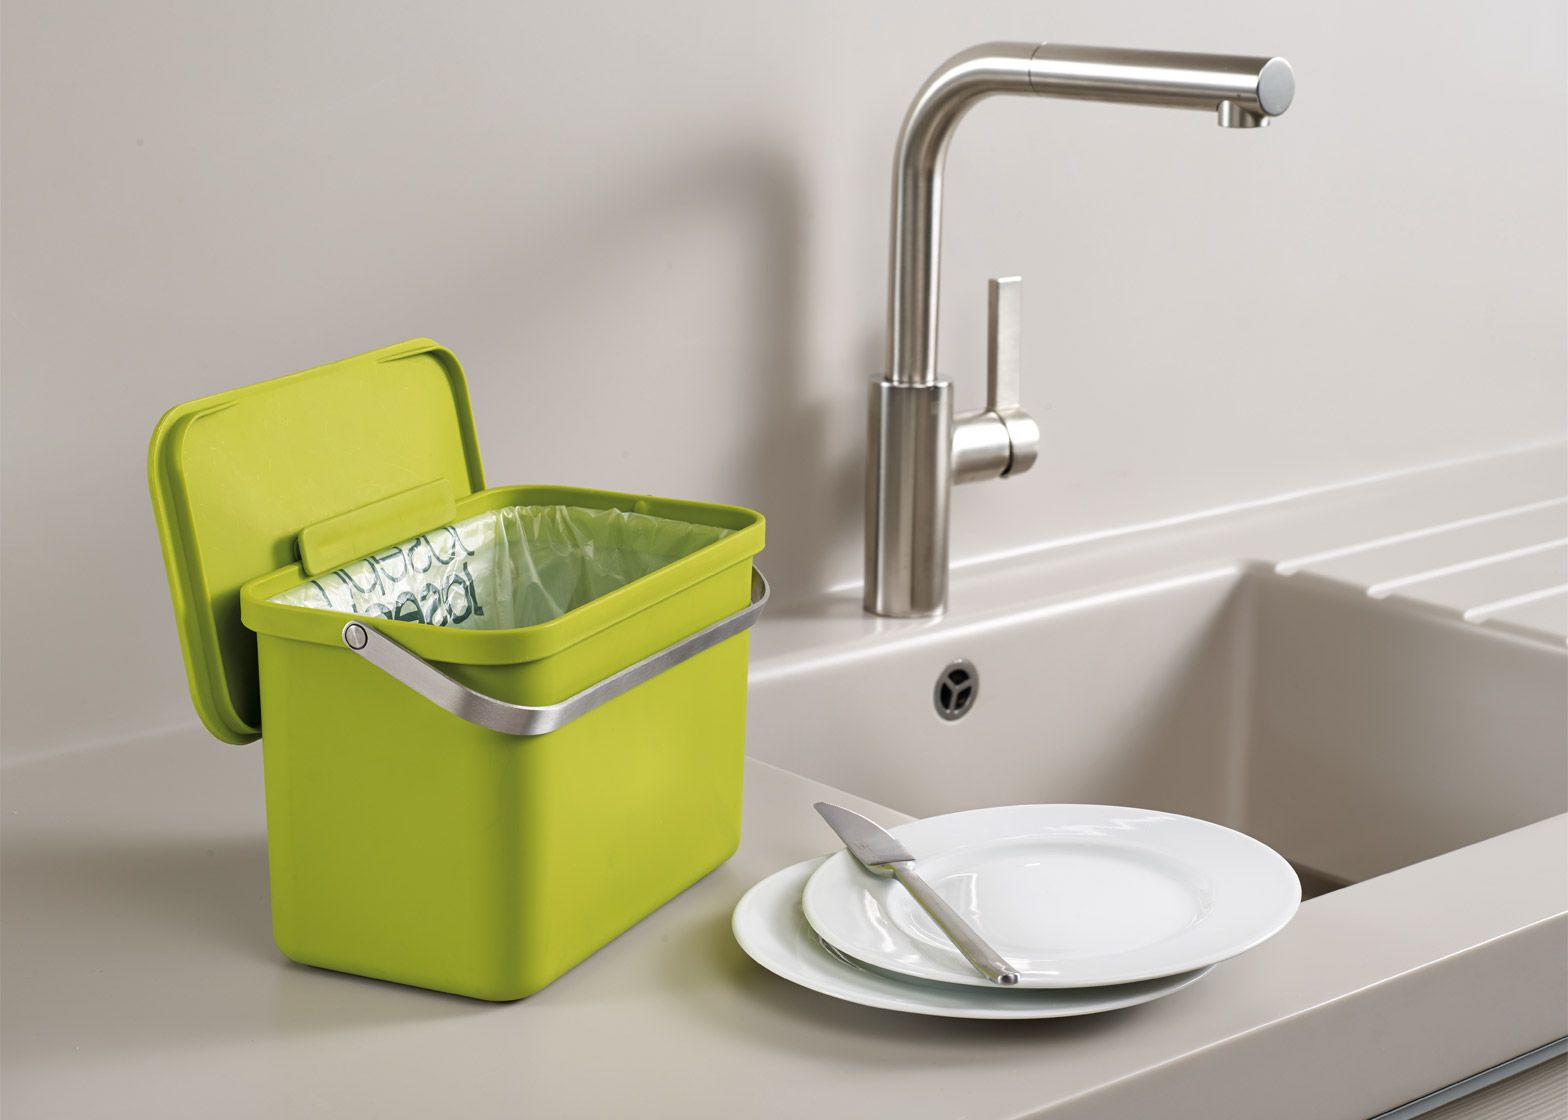 Totem Waste Bin Designed By Pearsonlloyd For Joseph Design Compartment Sink Drain Diagram Pinterest